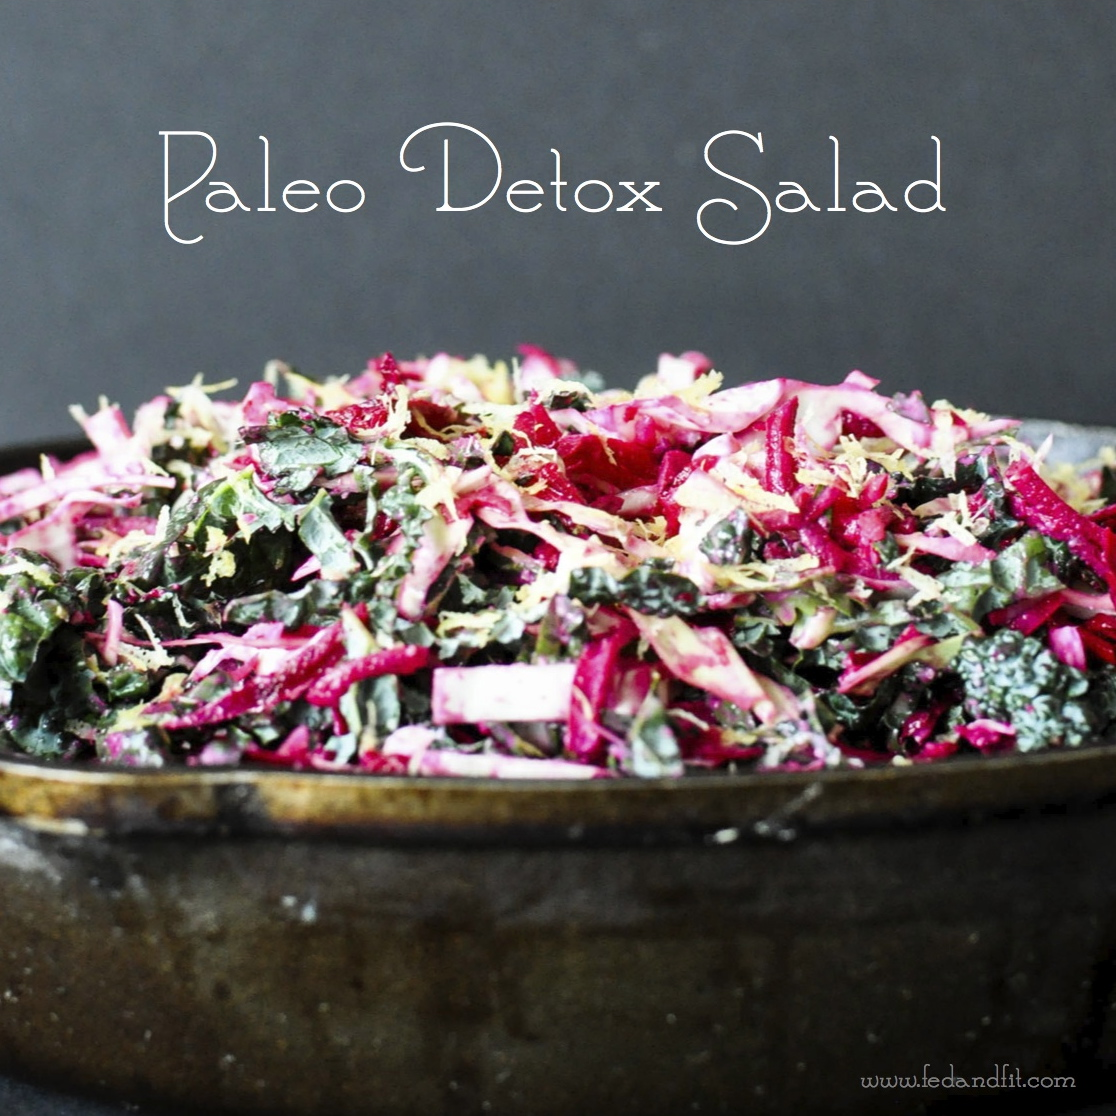 Fed & FitPaleo Detox Salad - Fed & Fit